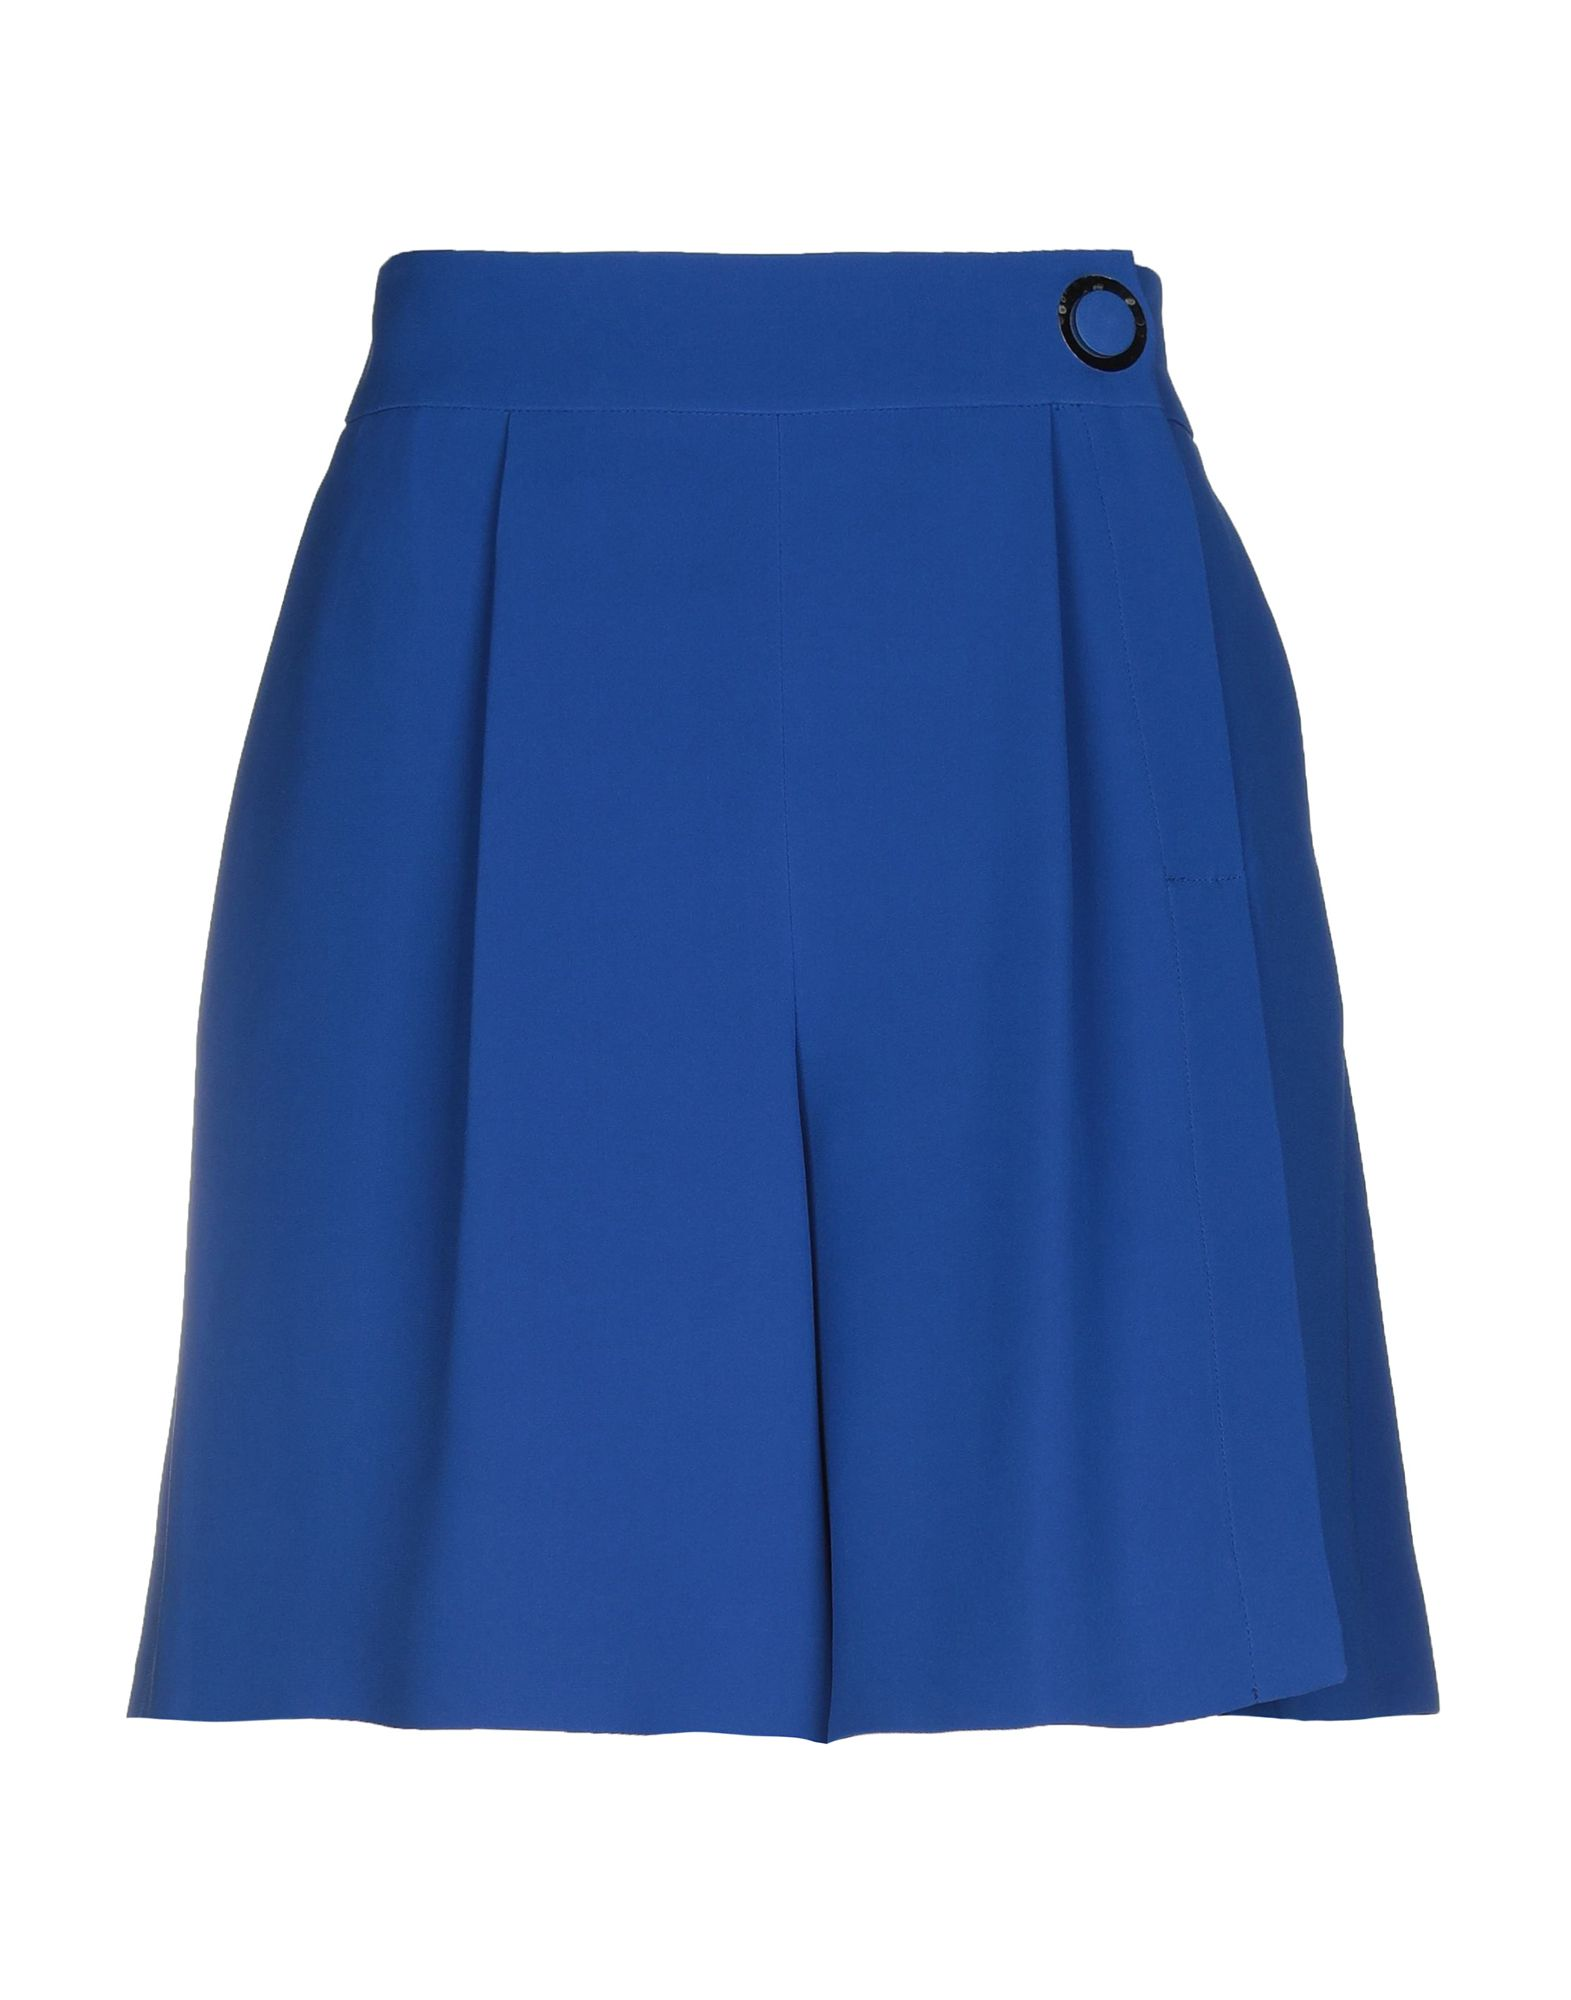 GIORGIO ARMANI Mini skirts. crepe, no appliqués, solid color, mid rise, multipockets, front closure, snap-buttons, zip, divided skirt, large sized. 100% Silk